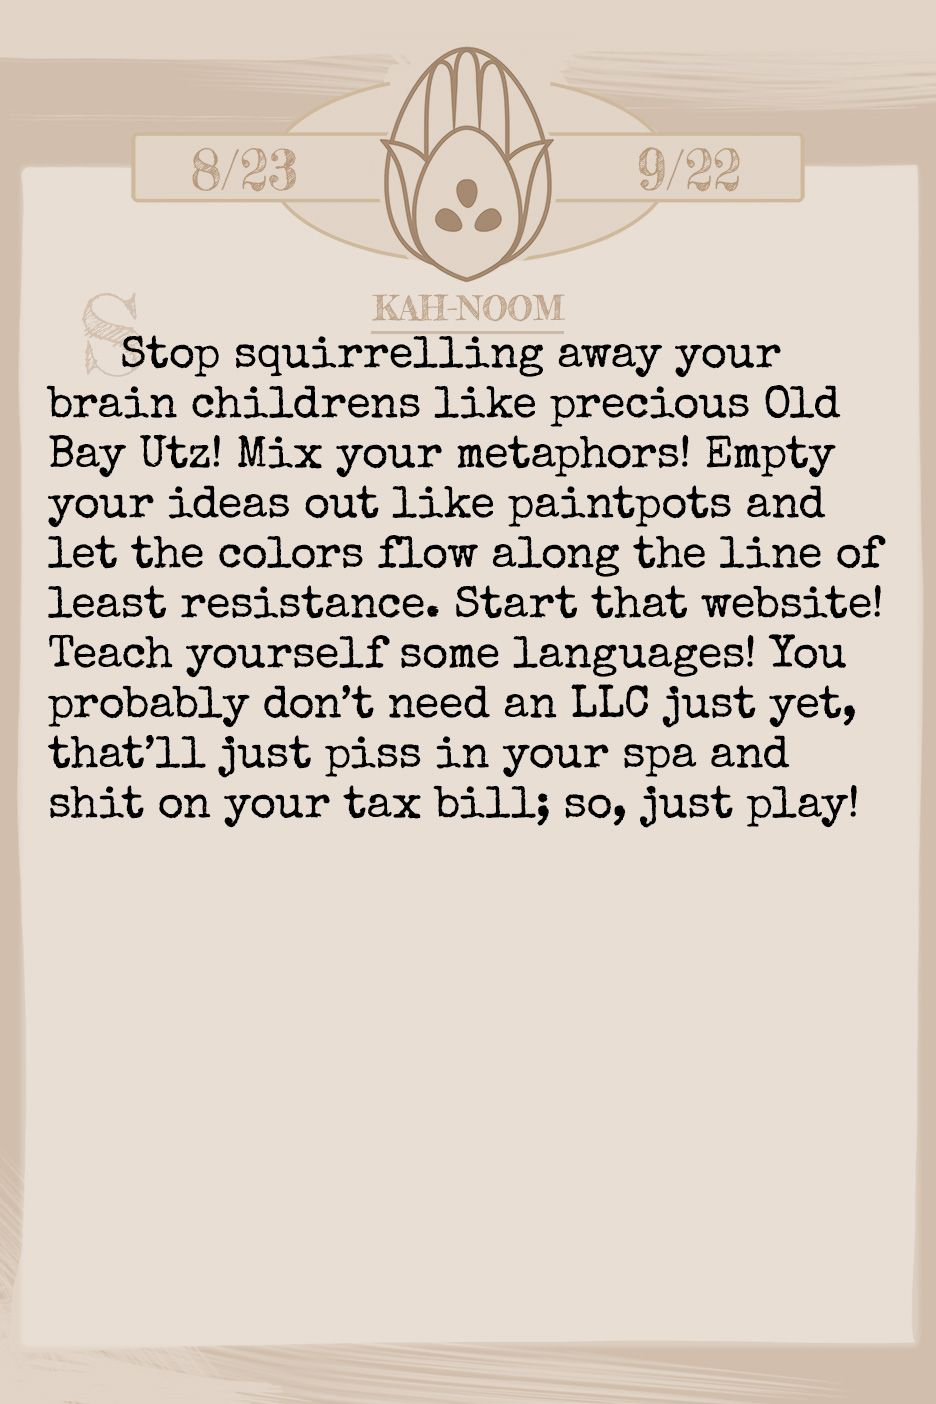 July 2019 Horoscope (Old sign: Virgo) Stop squirrelling away your brain childrens like precious Old Bay Utz! Mix your metaphors! Empty your ideas out like paintpots and let the colors flow along the line of least resistance. Start that website! Teach yourself some languages! You probably don't need an LLC just yet, that'll just piss in your spa and shit on your tax bill; so, just play!